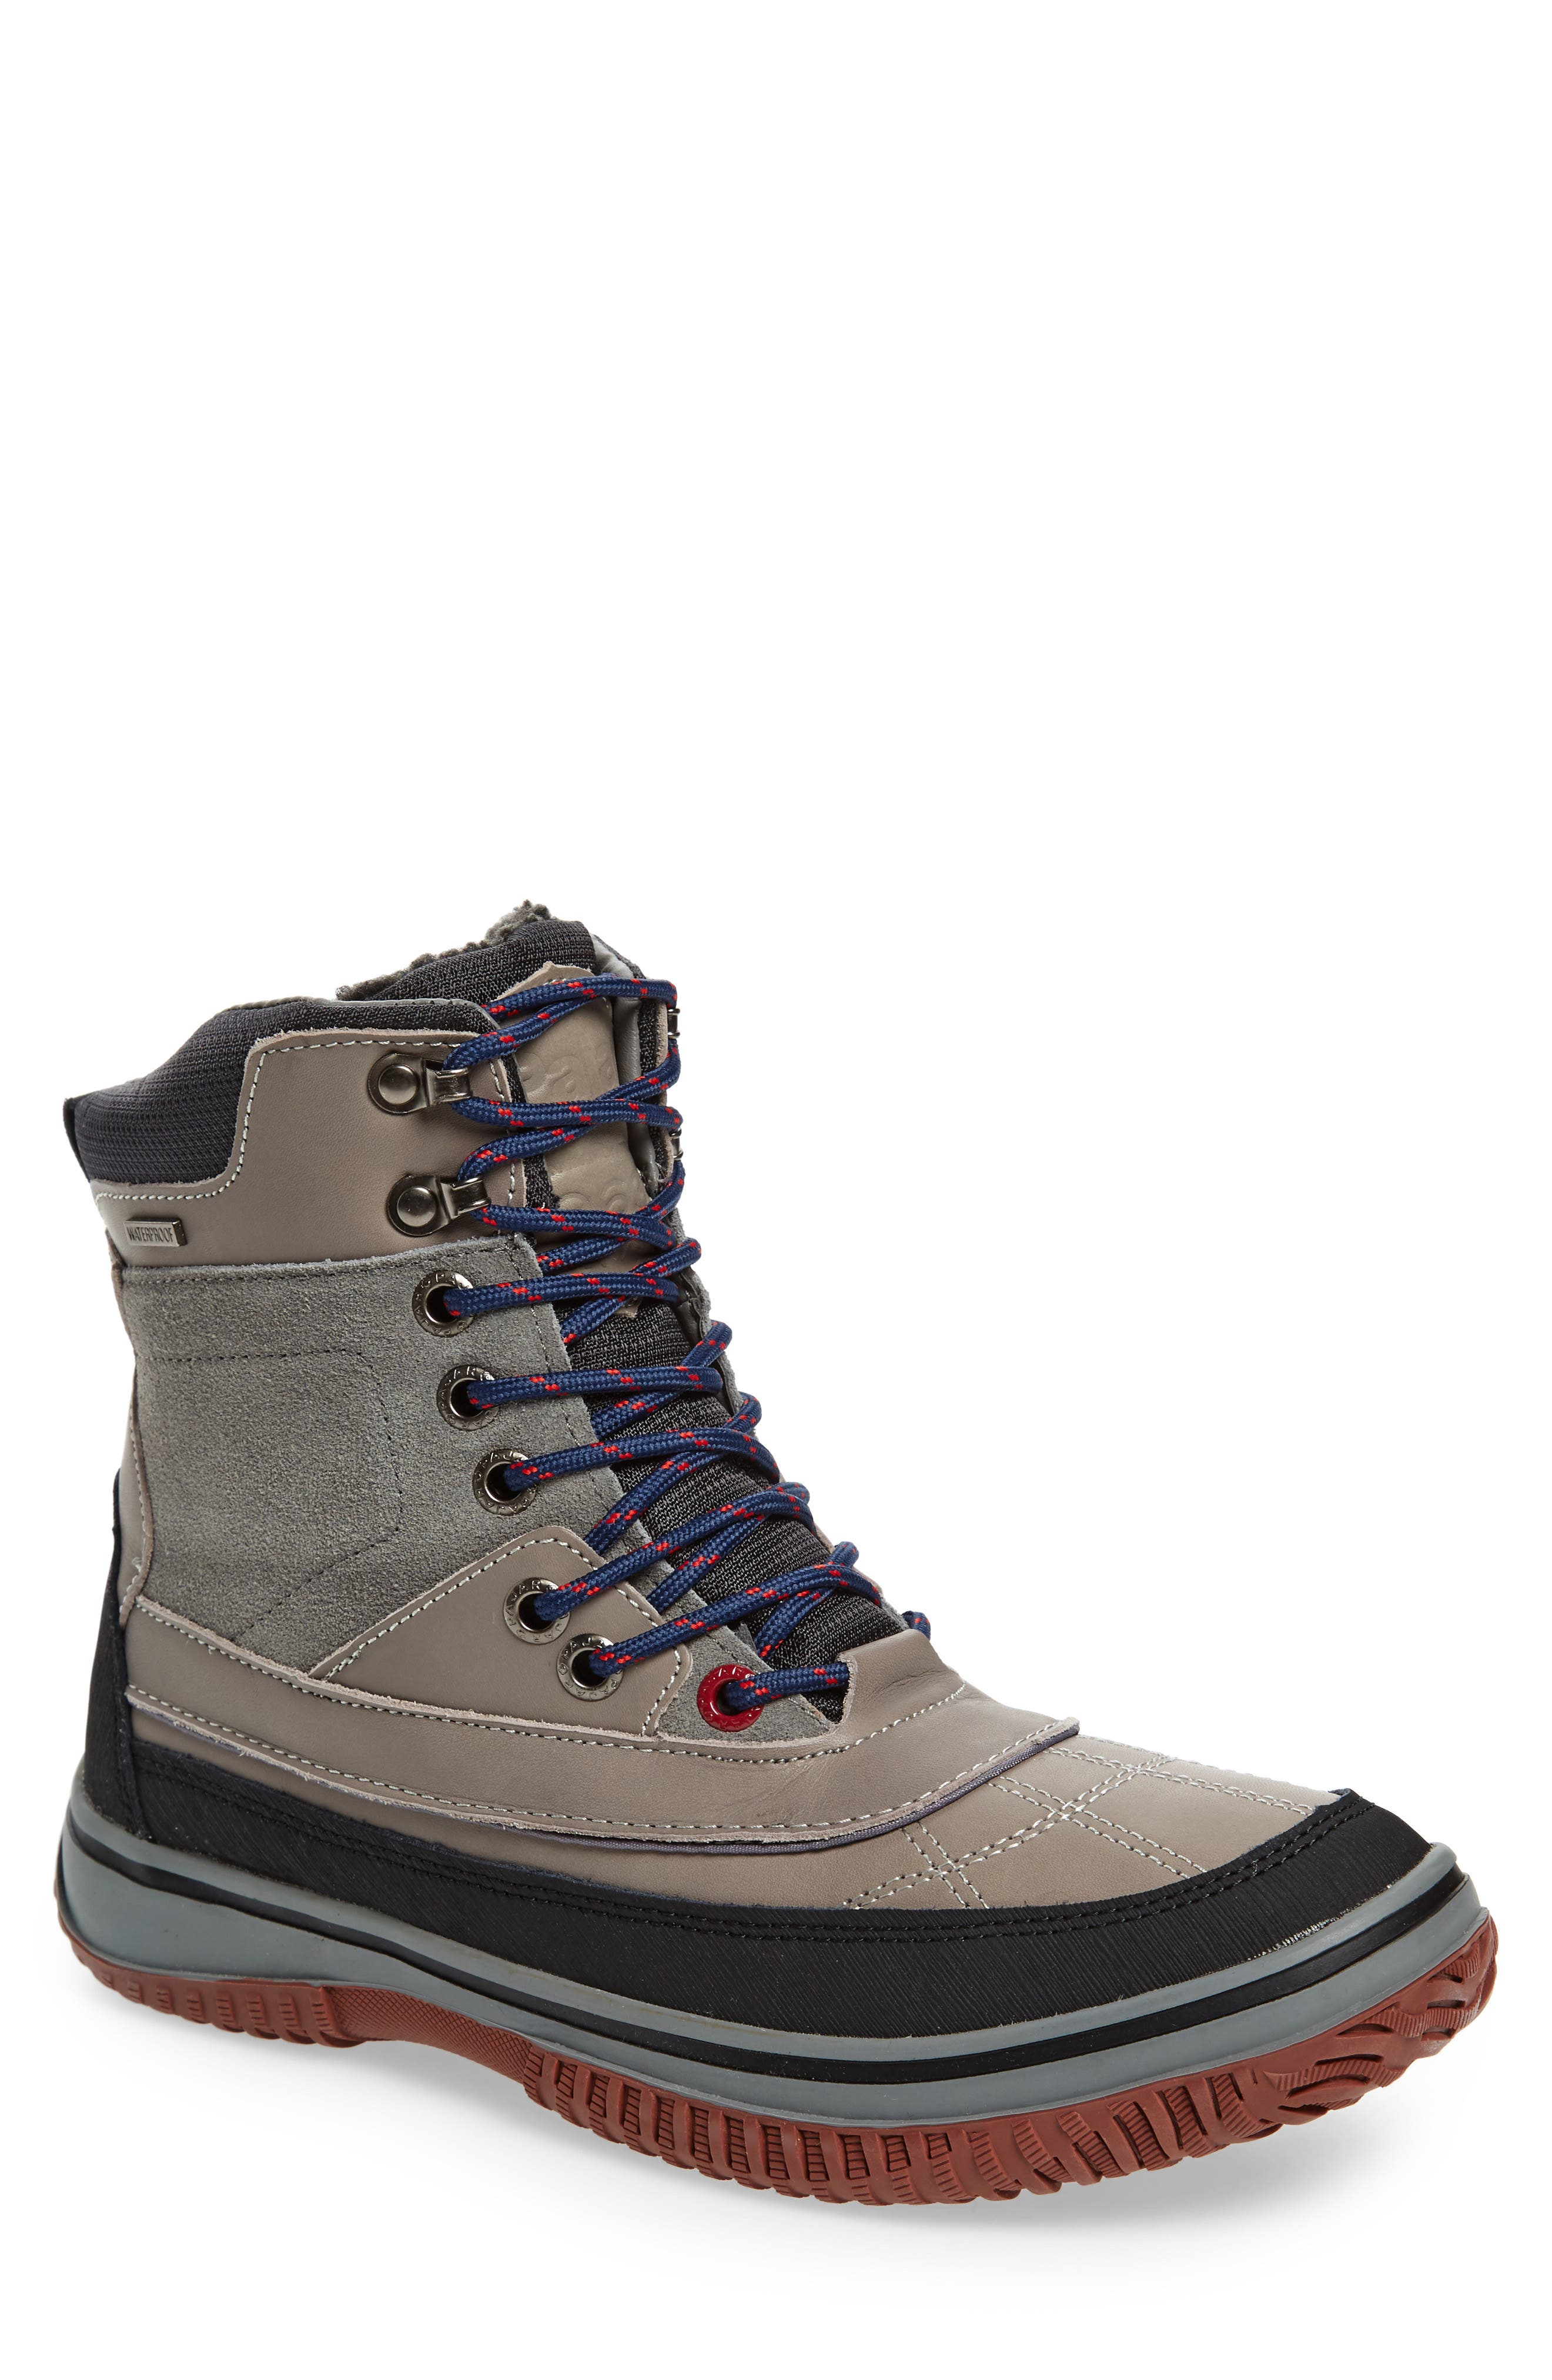 Gaspar Waterproof Winter Boot,                         Main,                         color, GREY LEATHER